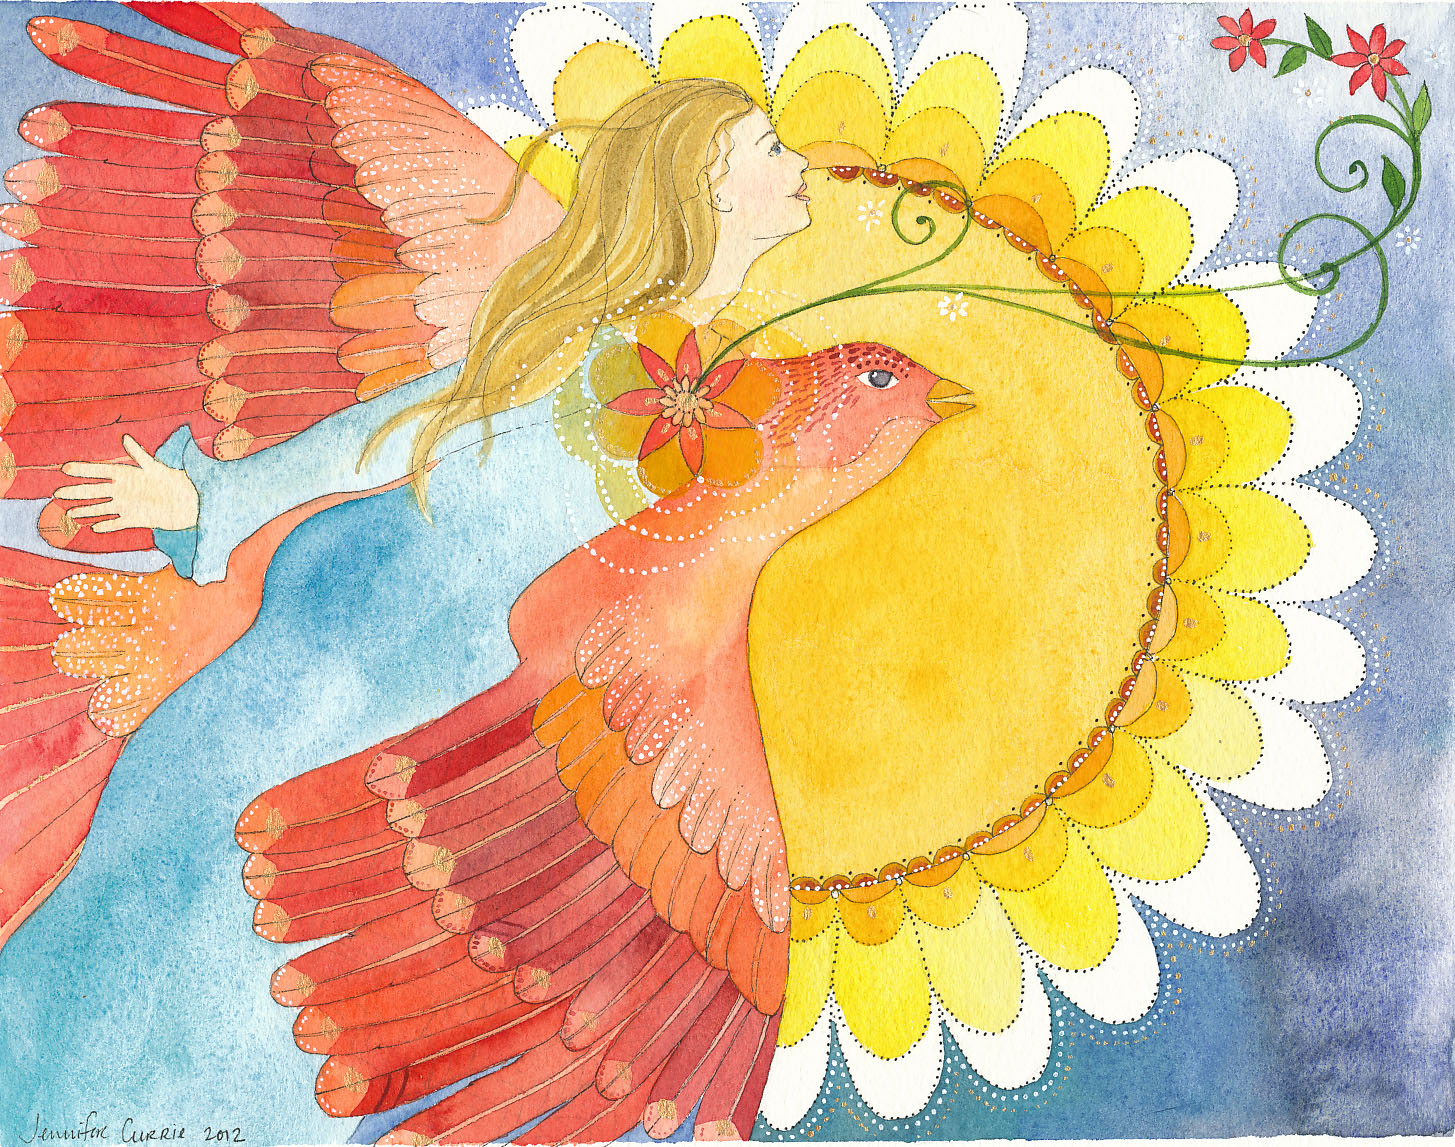 Expansion - Letting go of control Jennifer Currie - woman flying with a red bird towards a sun that looks like a flower